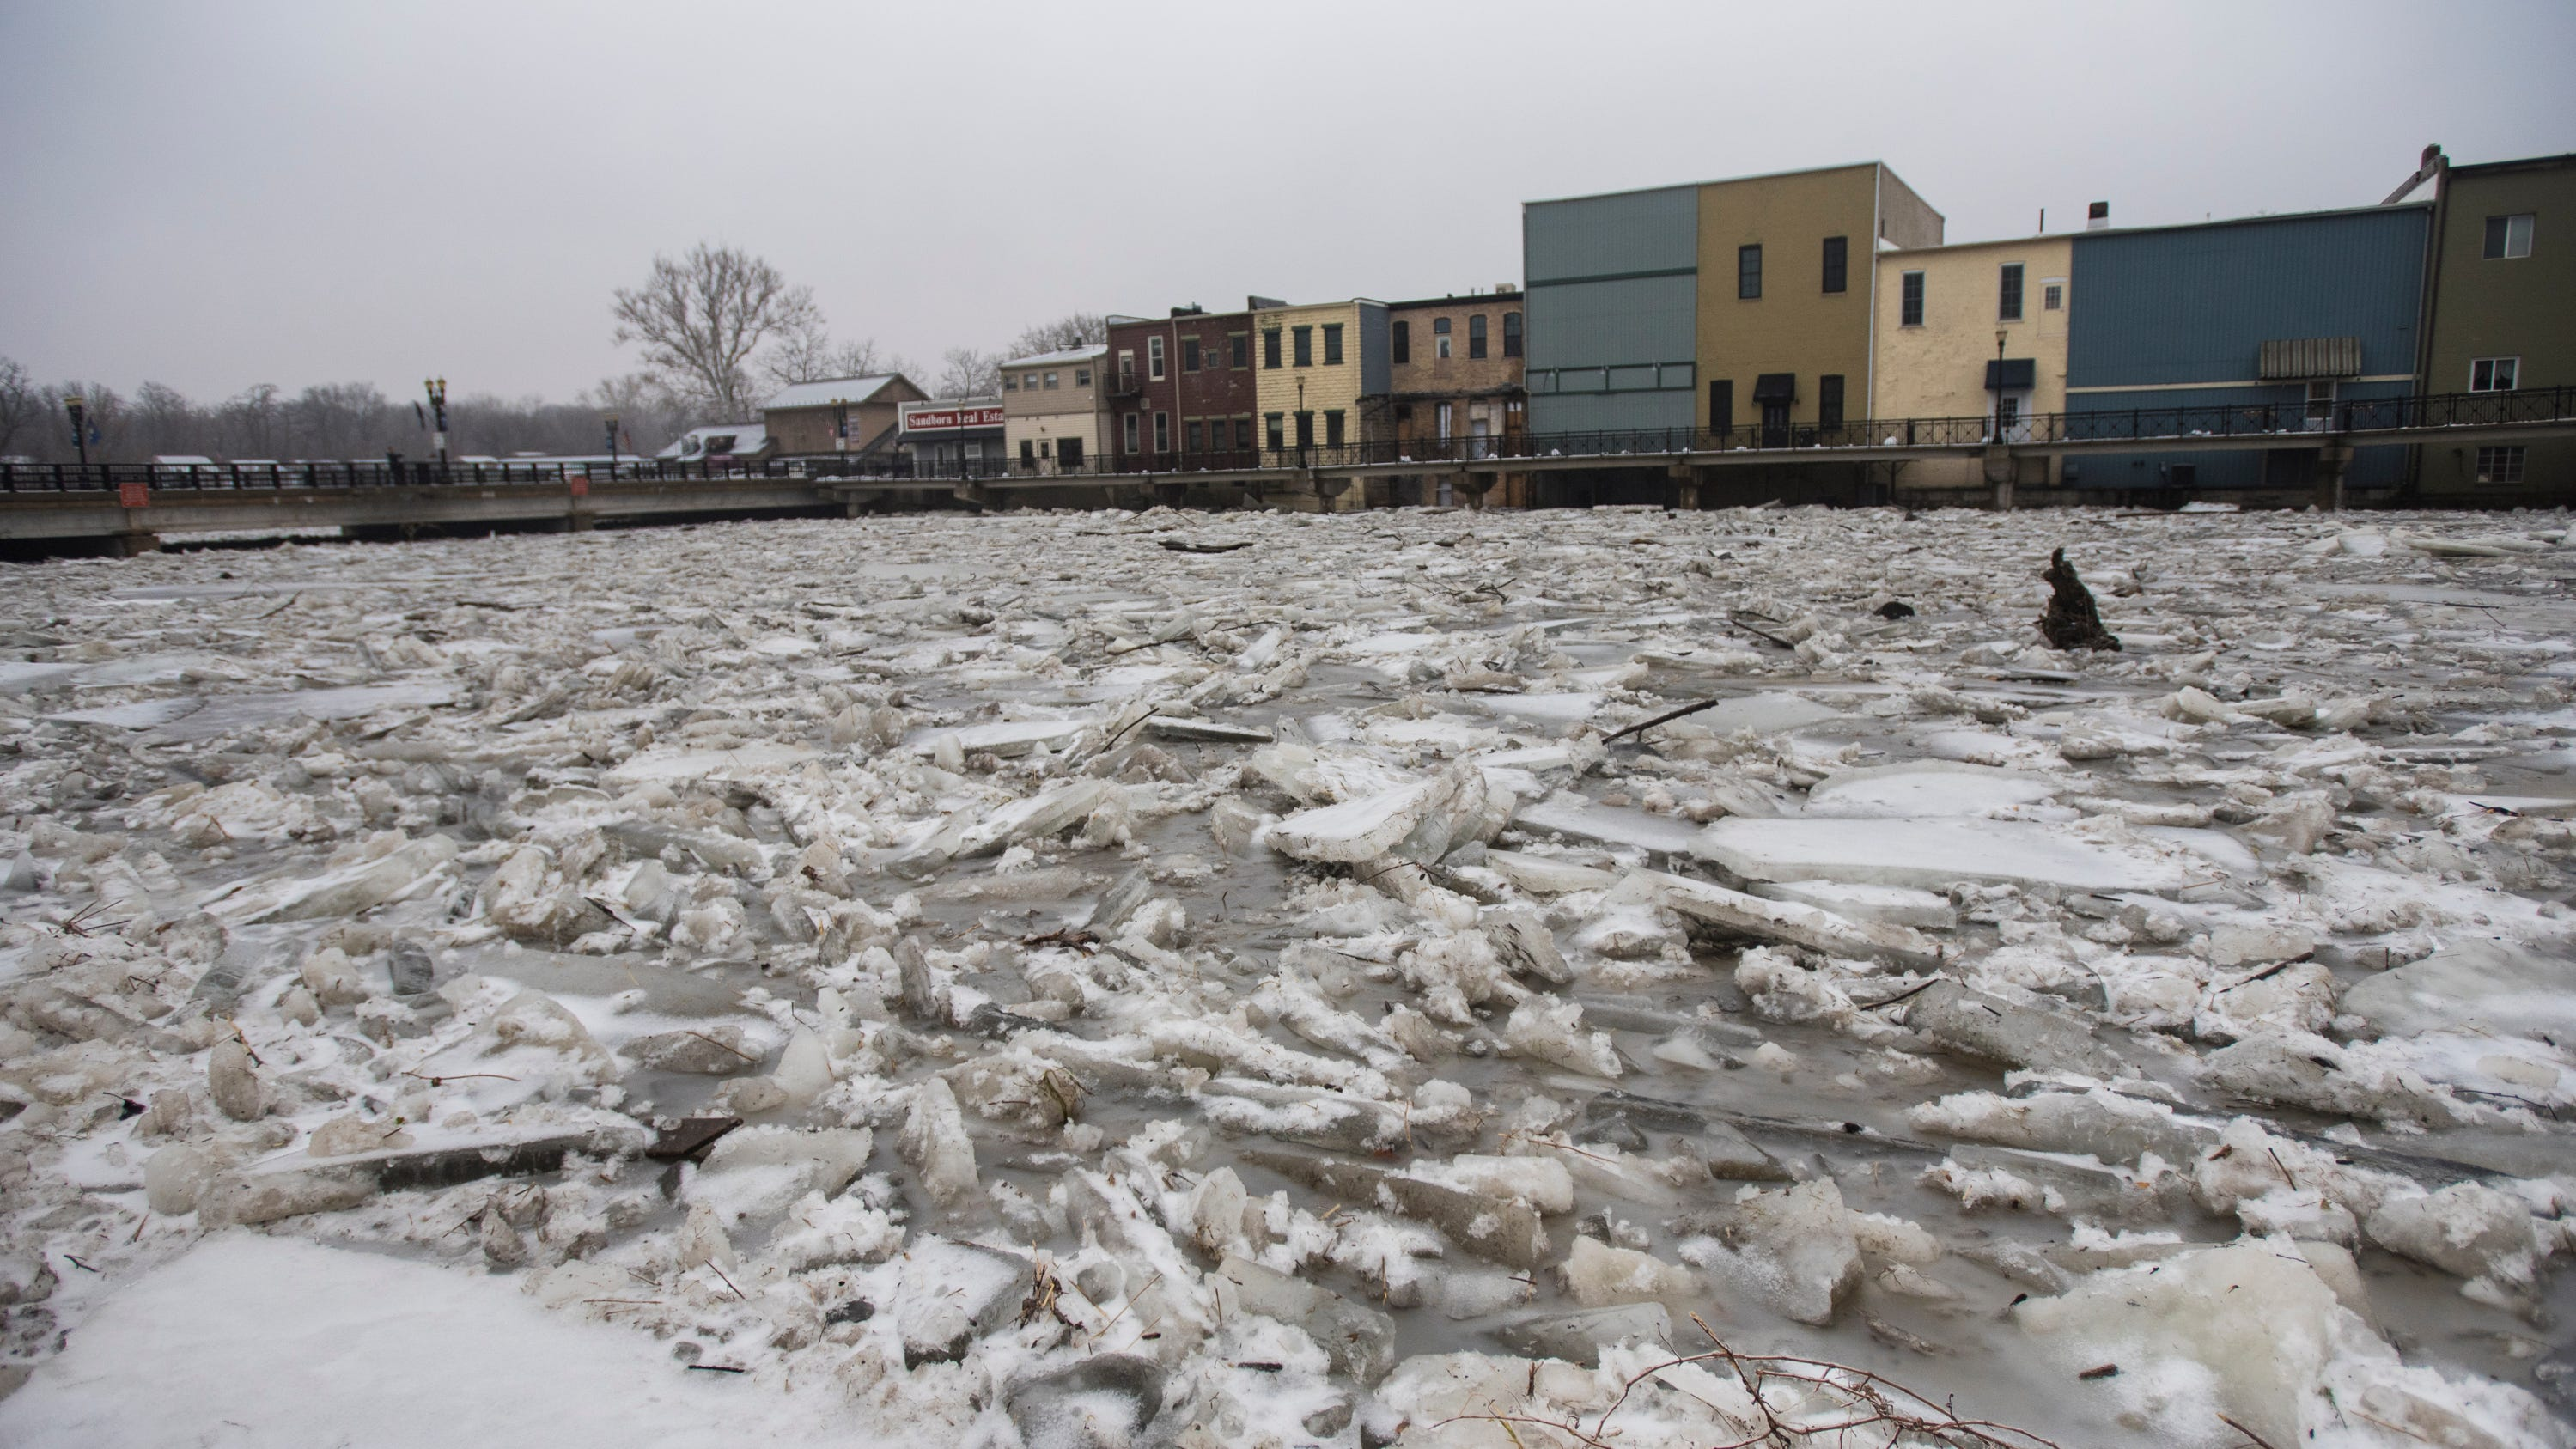 See images of the flooding and ice jam in Portland